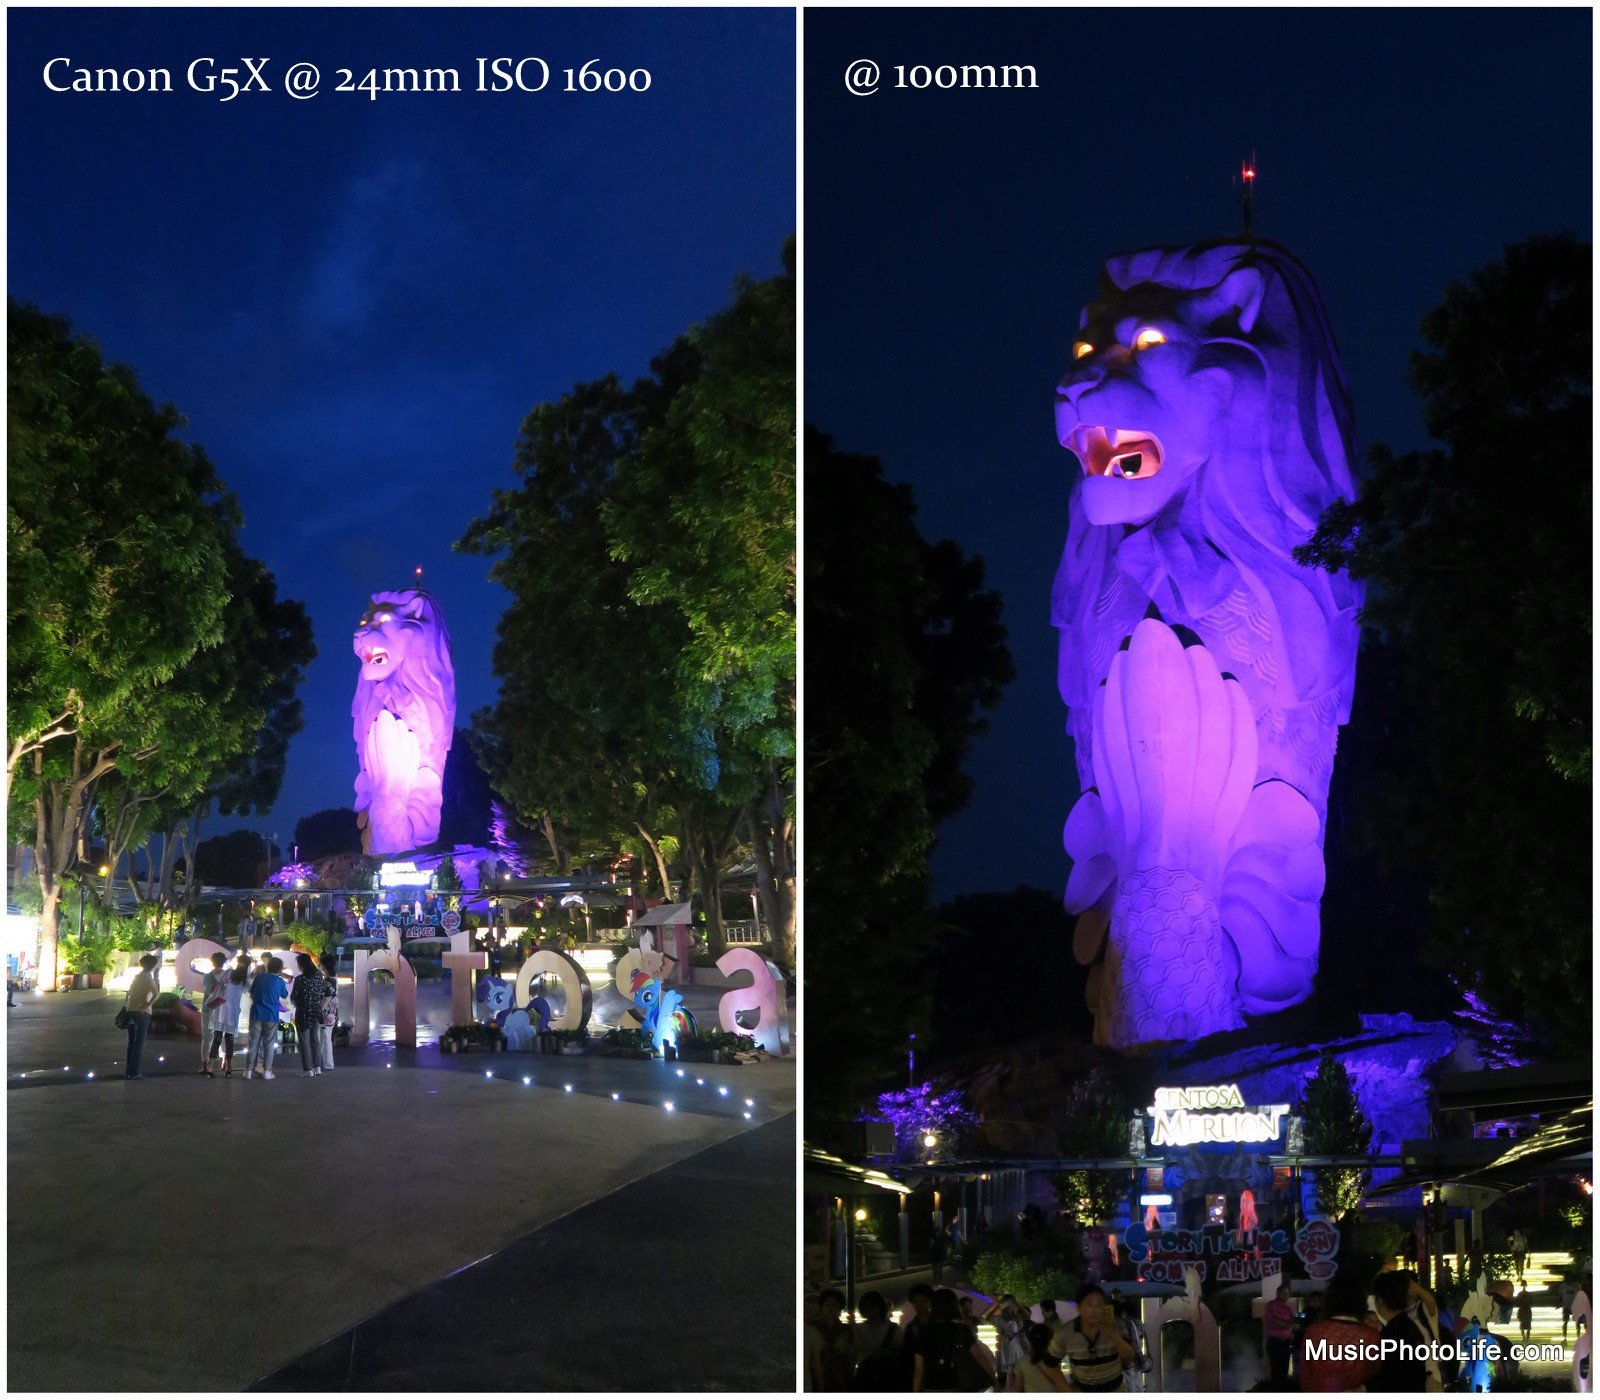 Canon G5X sample images of Merlion at Sentosa